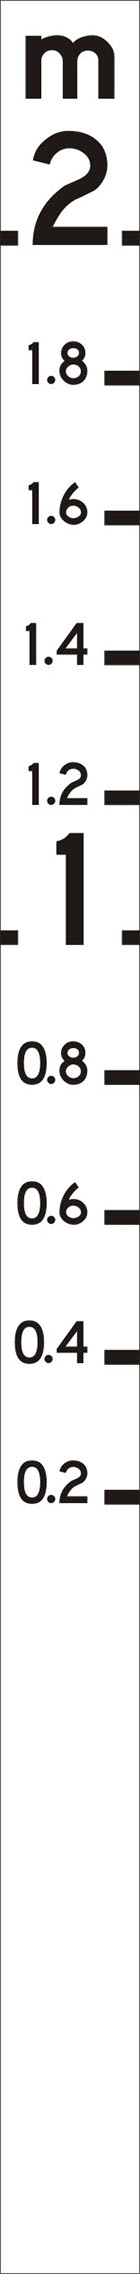 long, thin, white sign with black m at the top and numbered measurements marked down the side